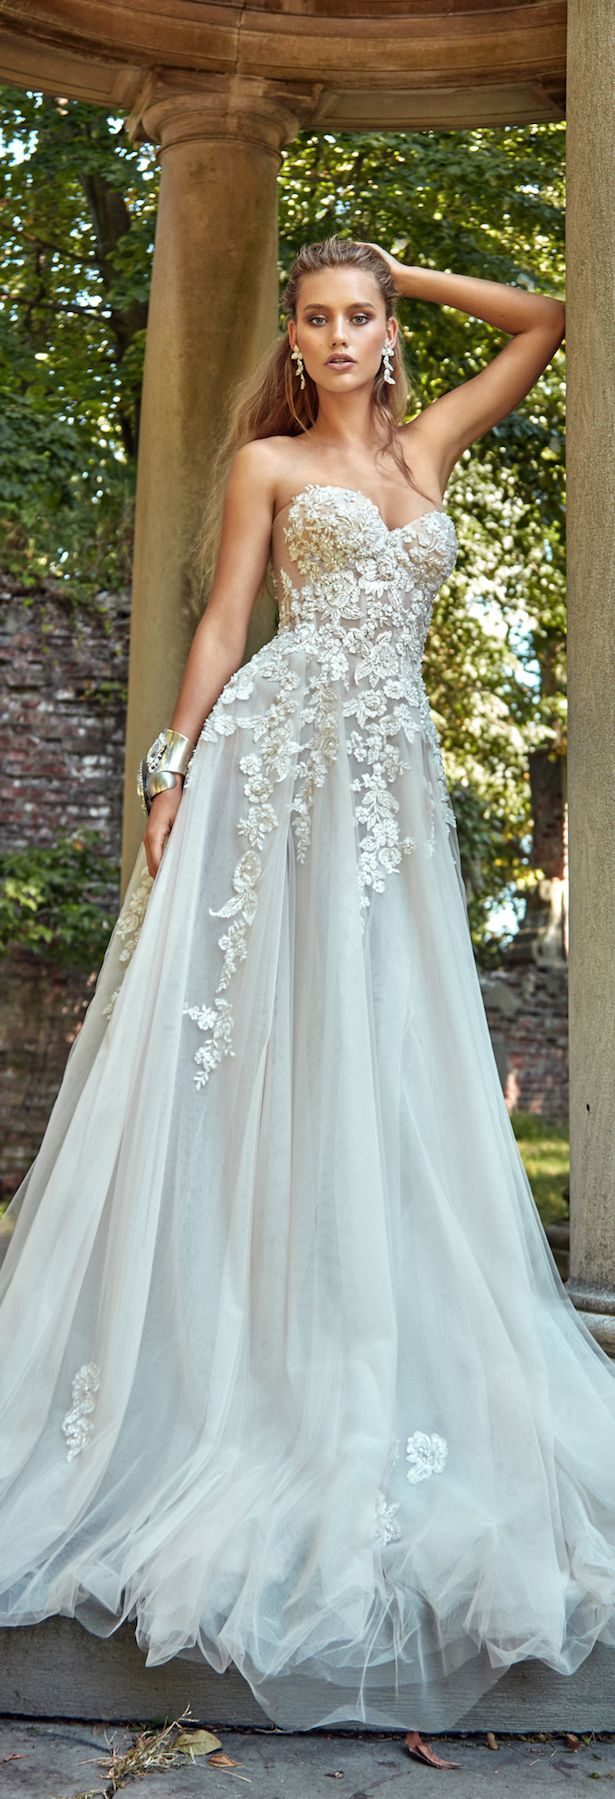 297 best Bridal Collection for a Beach Wedding* images on Pinterest ...